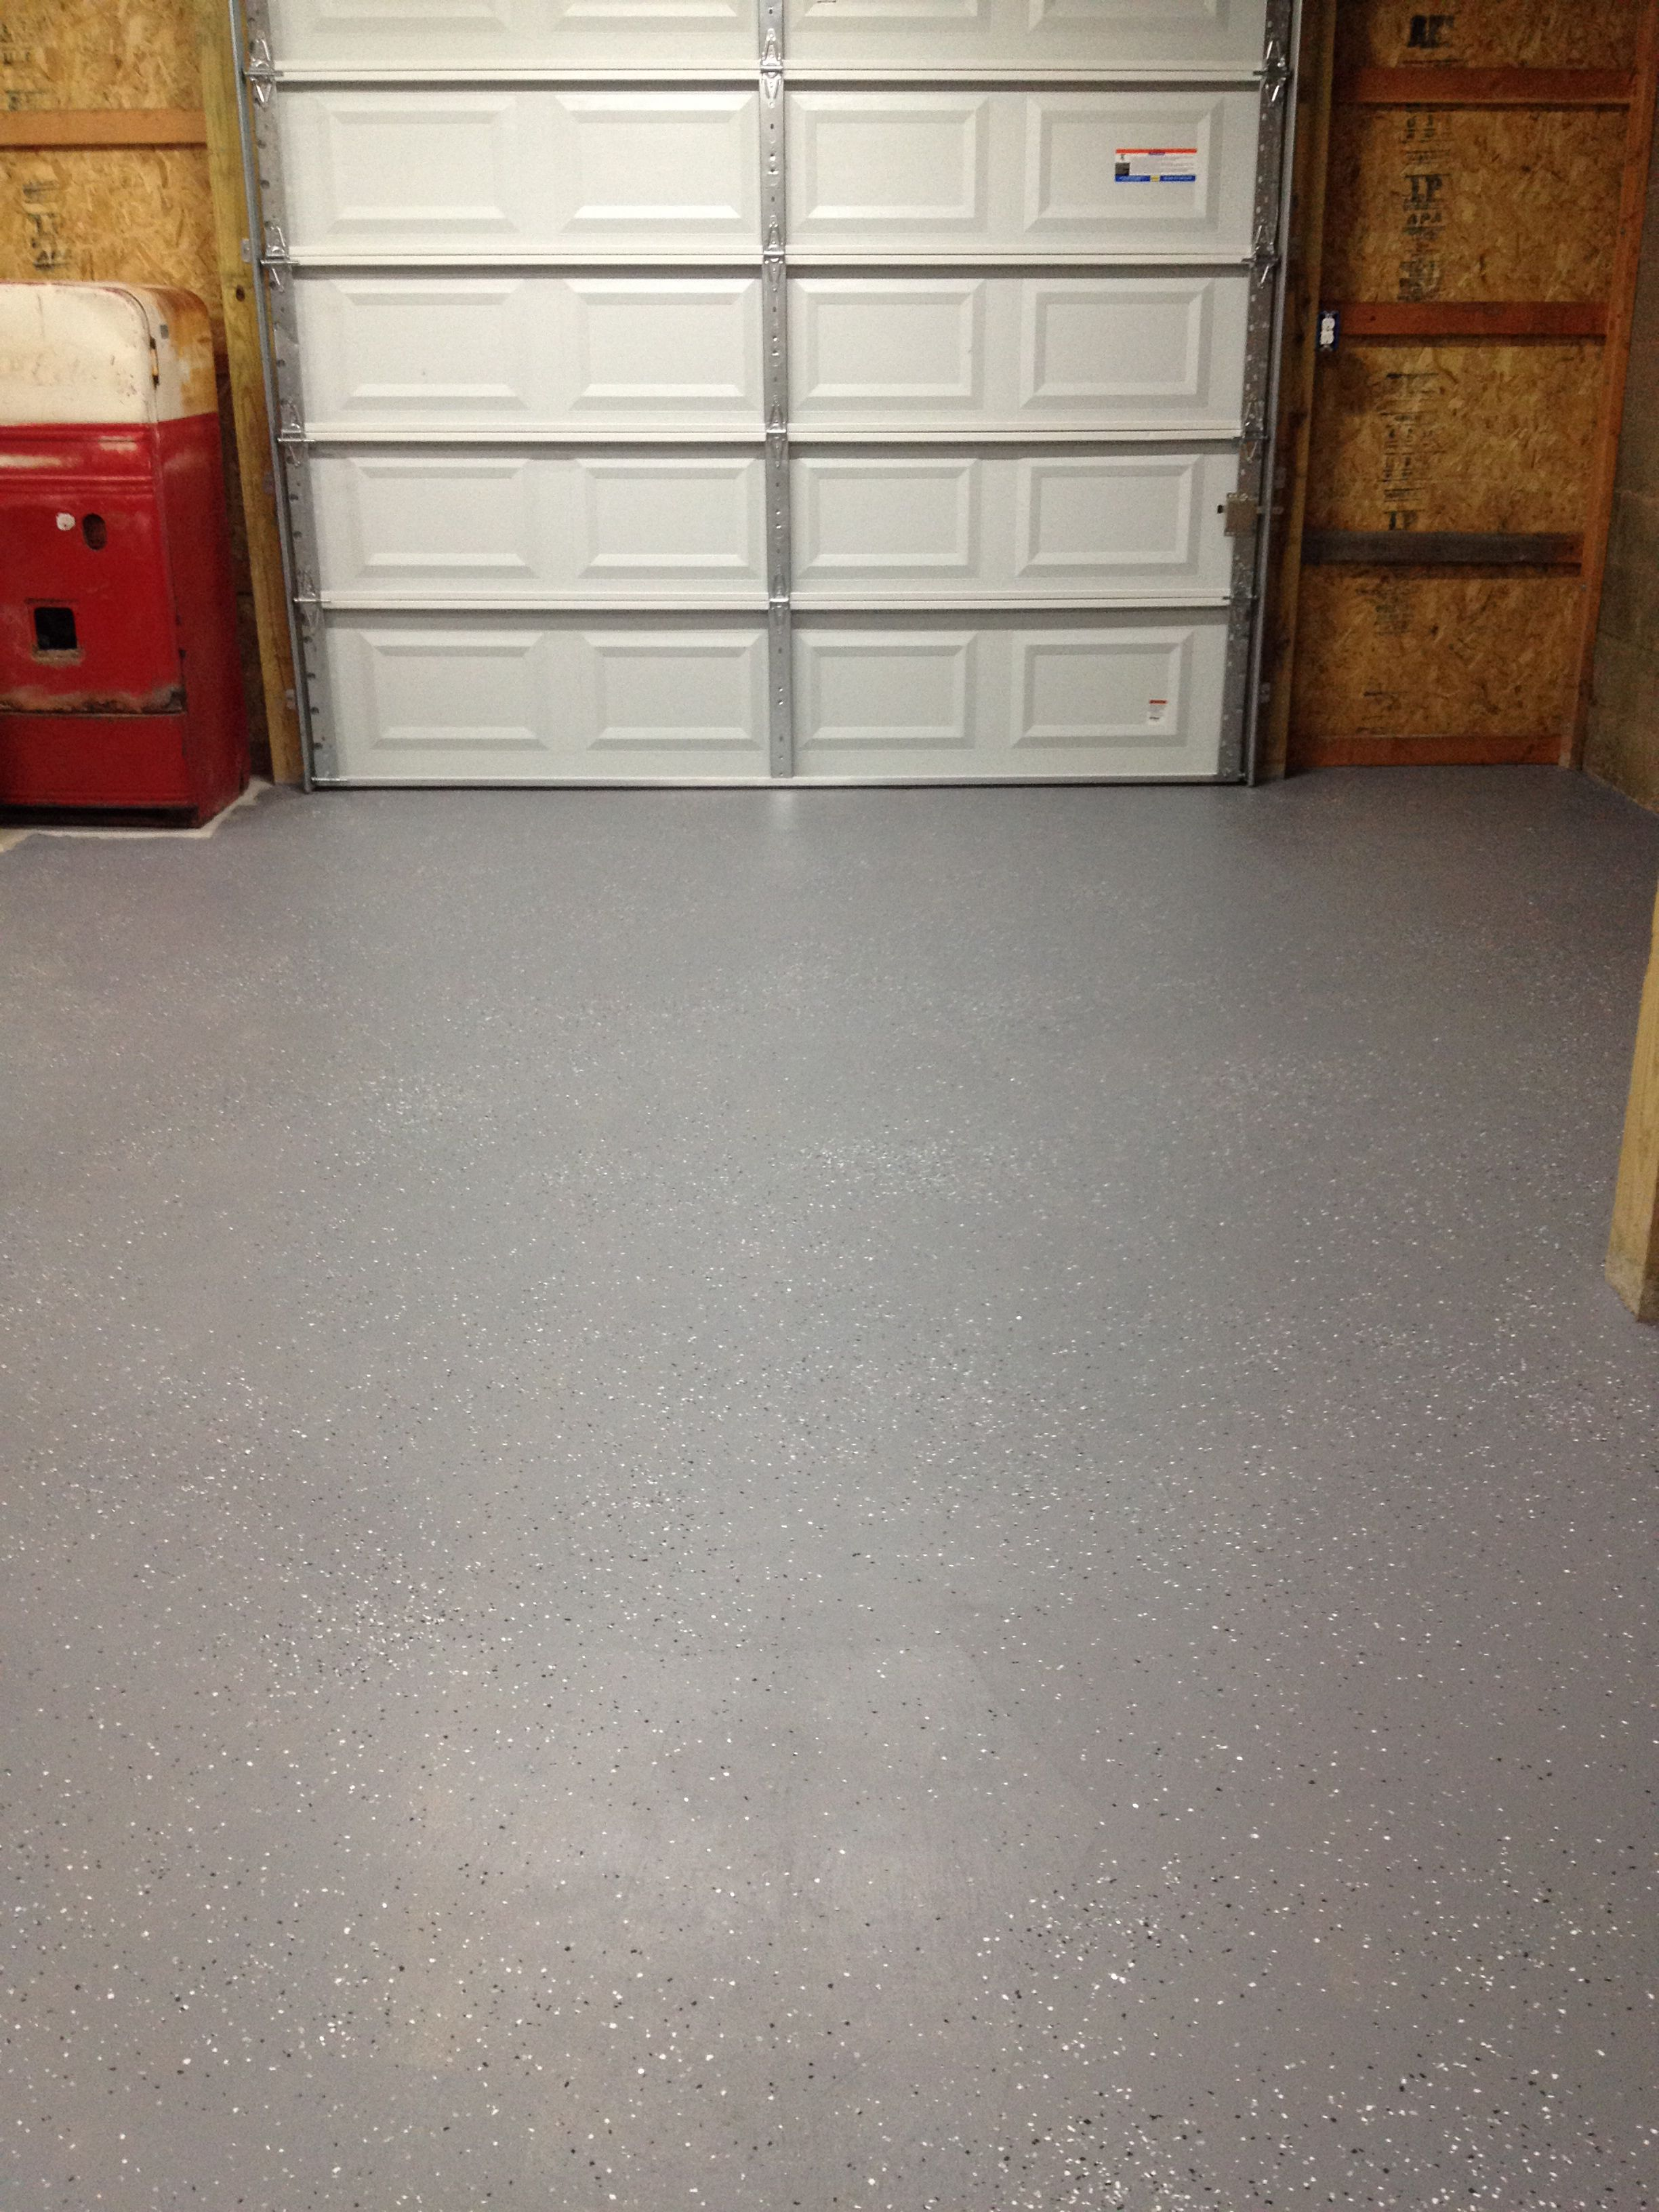 Behr 1 part epoxy concrete garage floor paint silver gray for 1 part epoxy concrete garage floor paint